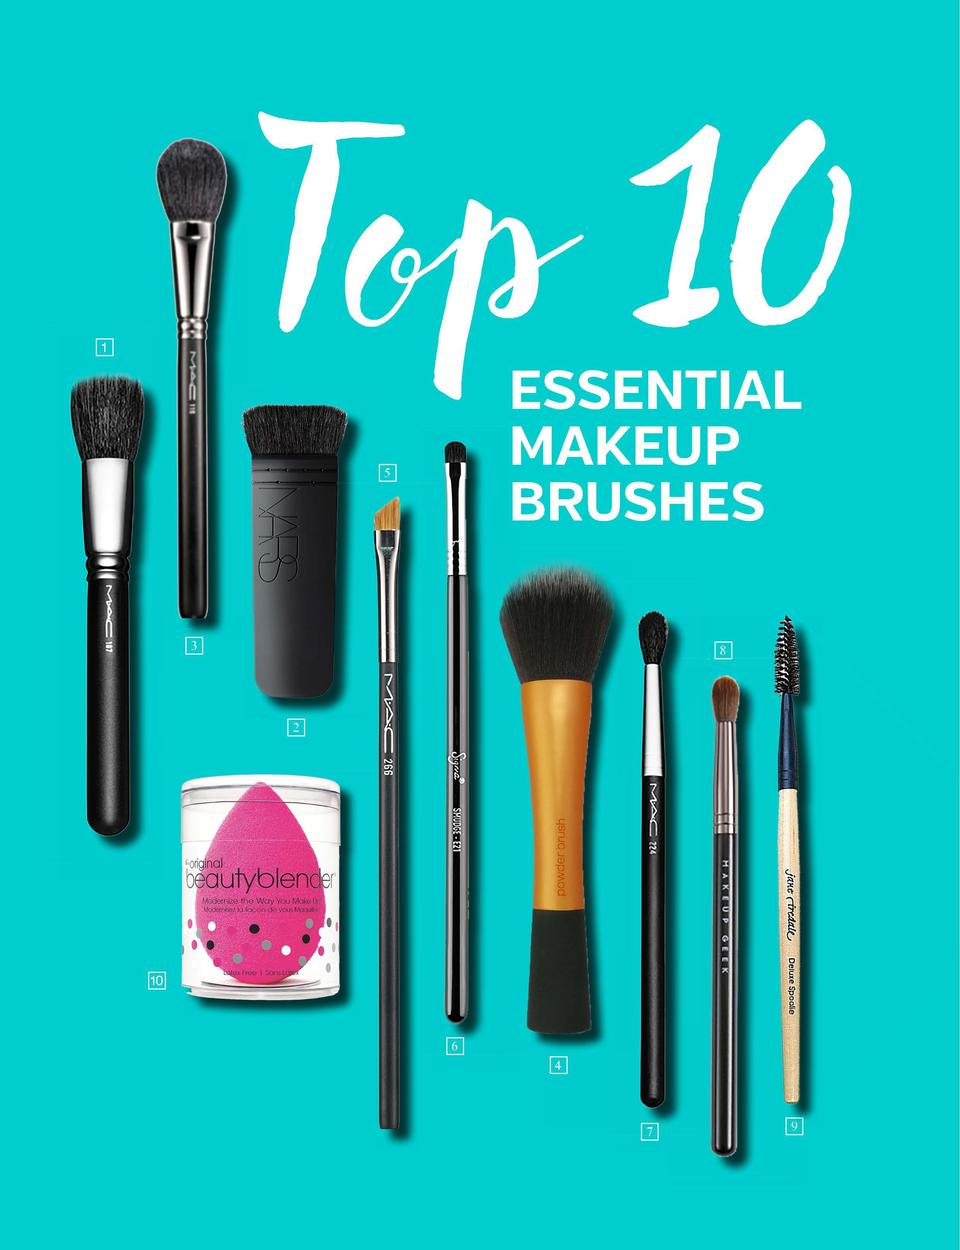 the beauty guide  MAKEUP  Top 10  e  ESSENTIAL MAKEUP BRUSHES  5  3  We all put on makeup  at least some of the time , but...